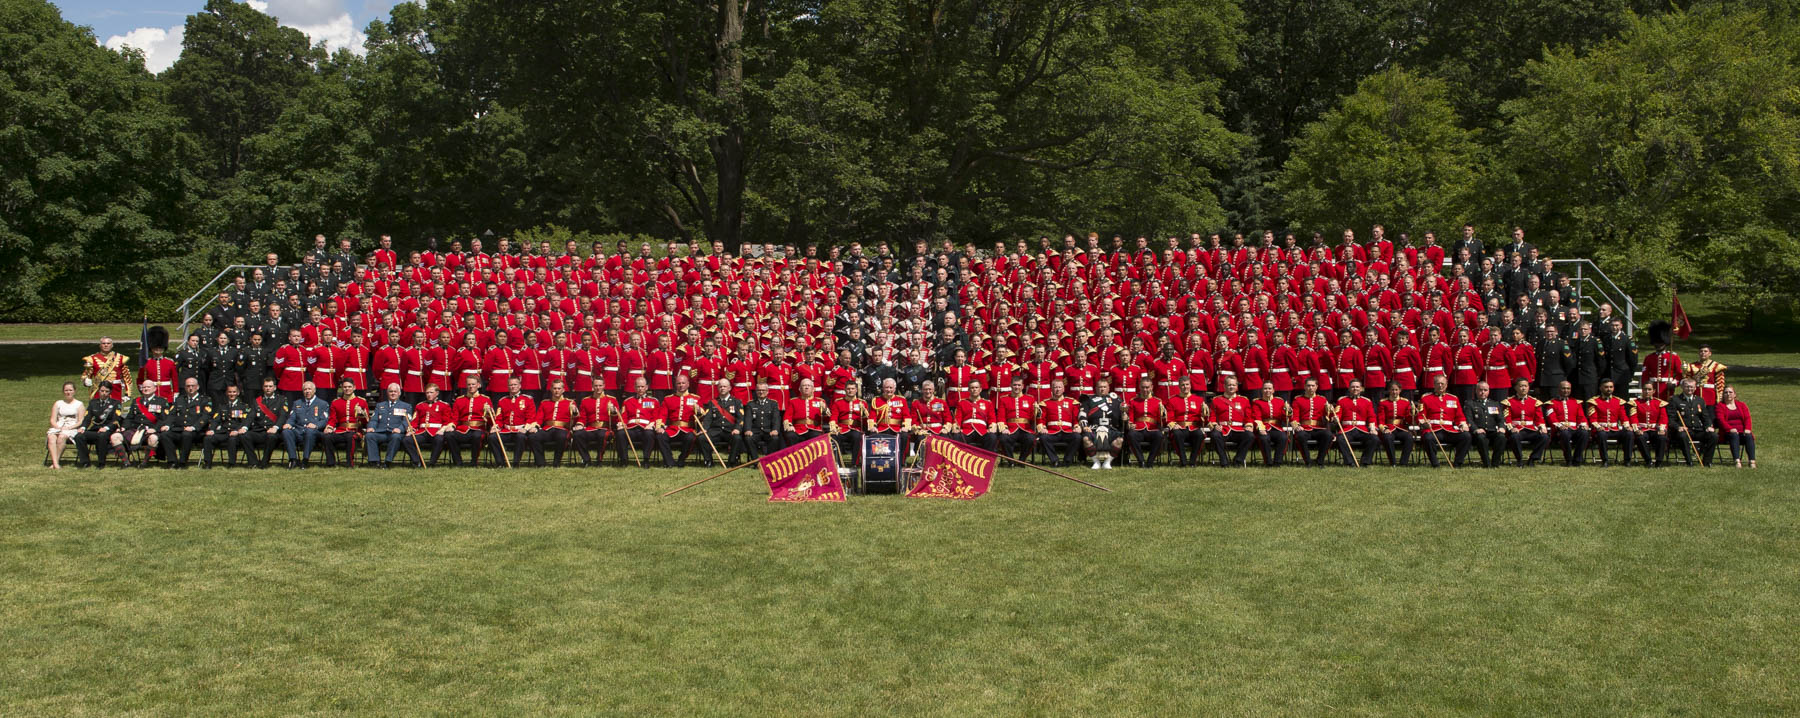 The Governor General took an official photograph with members of the Ceremonial Guard.